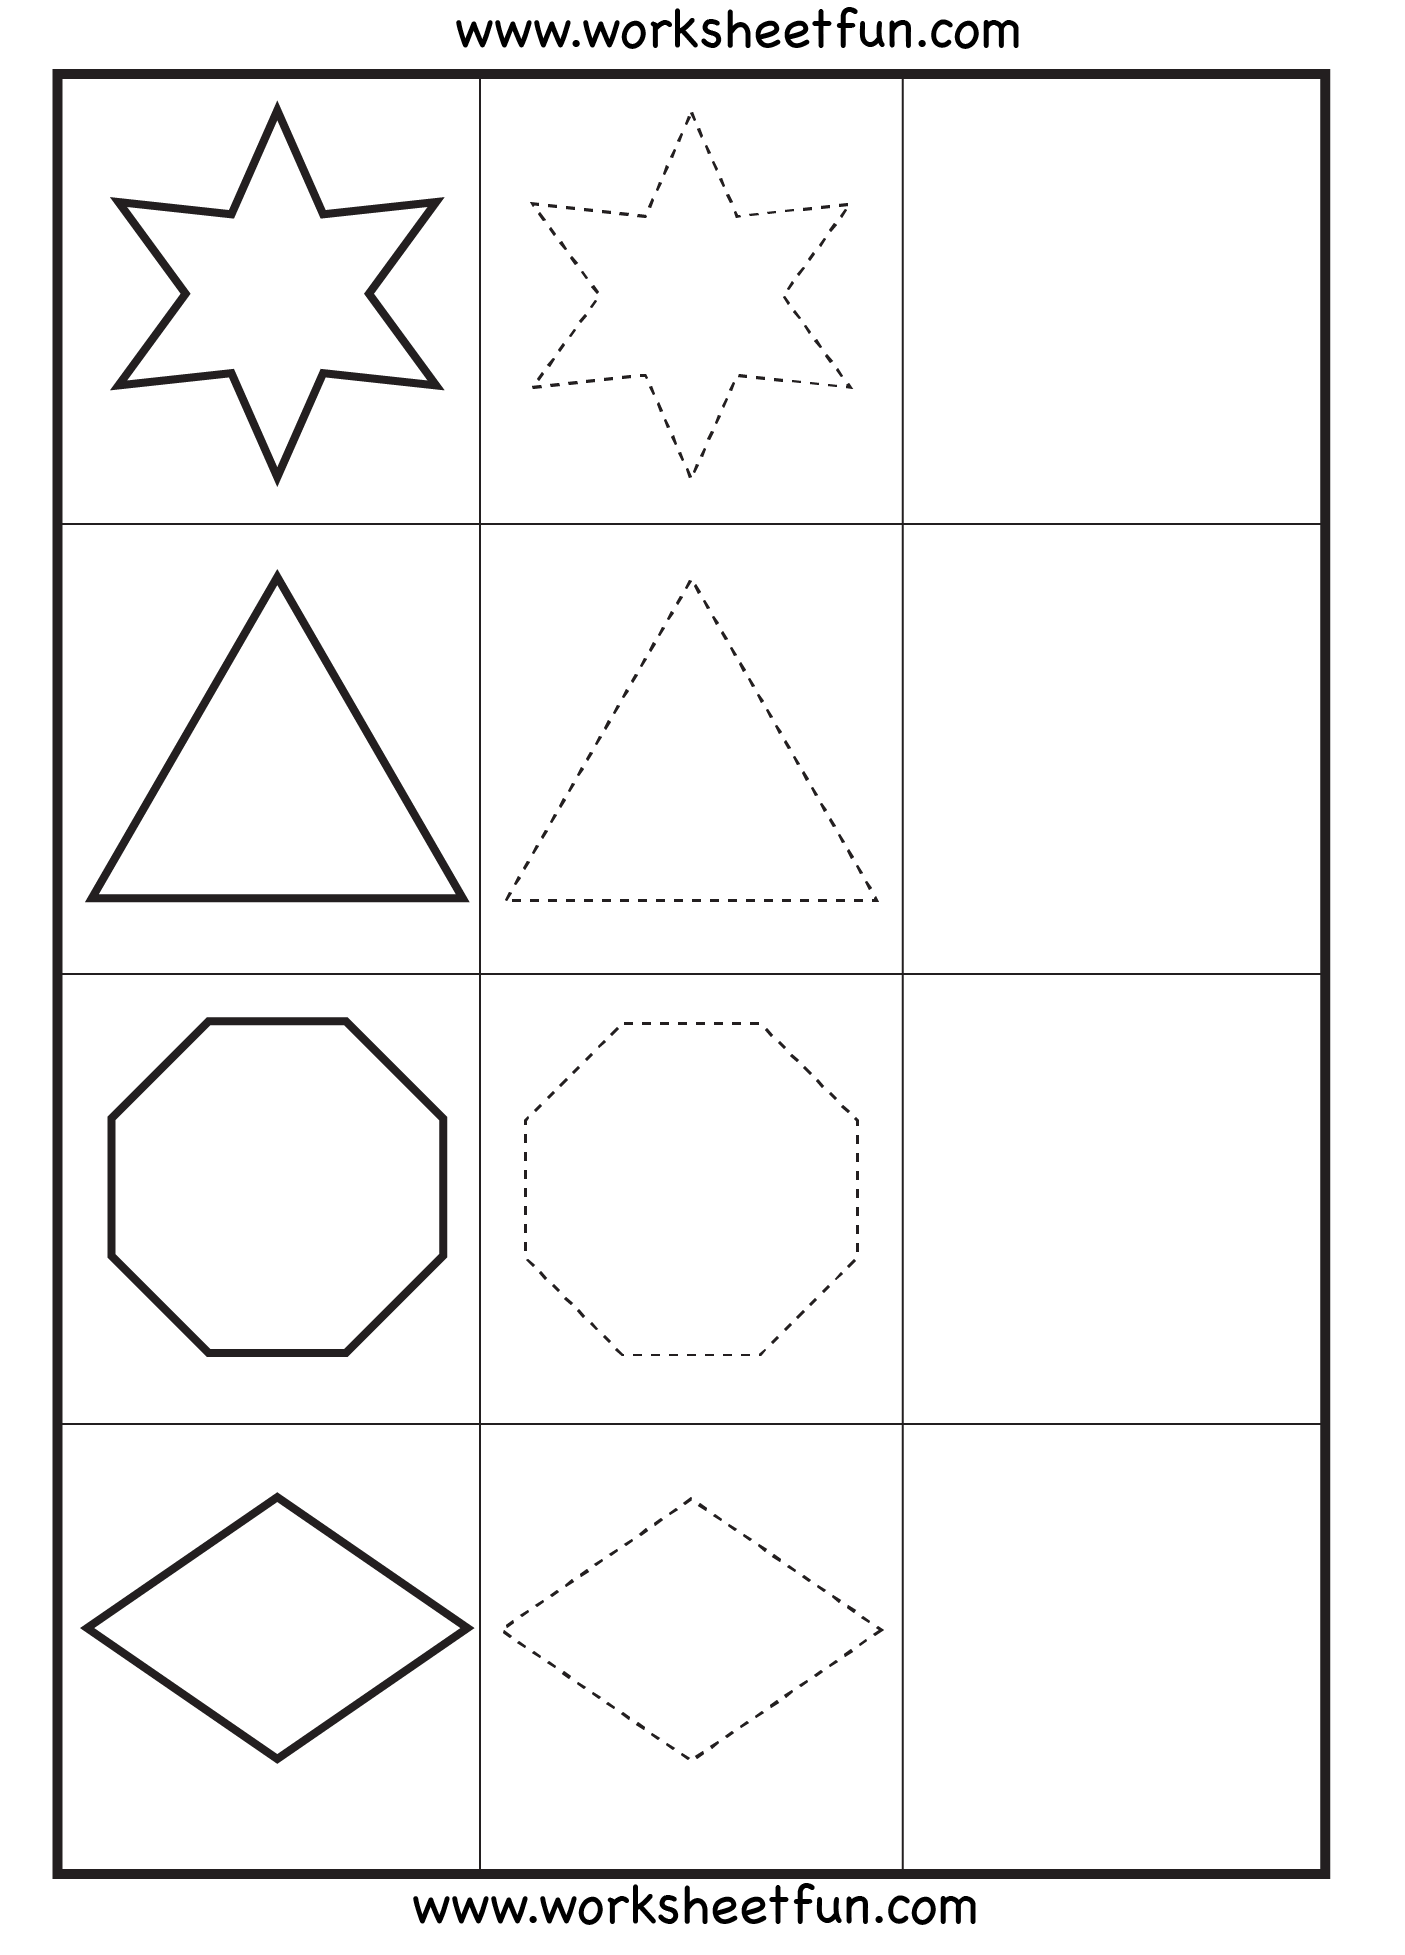 Worksheets Hexagon Worksheets shape tracing circle pentagon oval heart square hexagon shapes